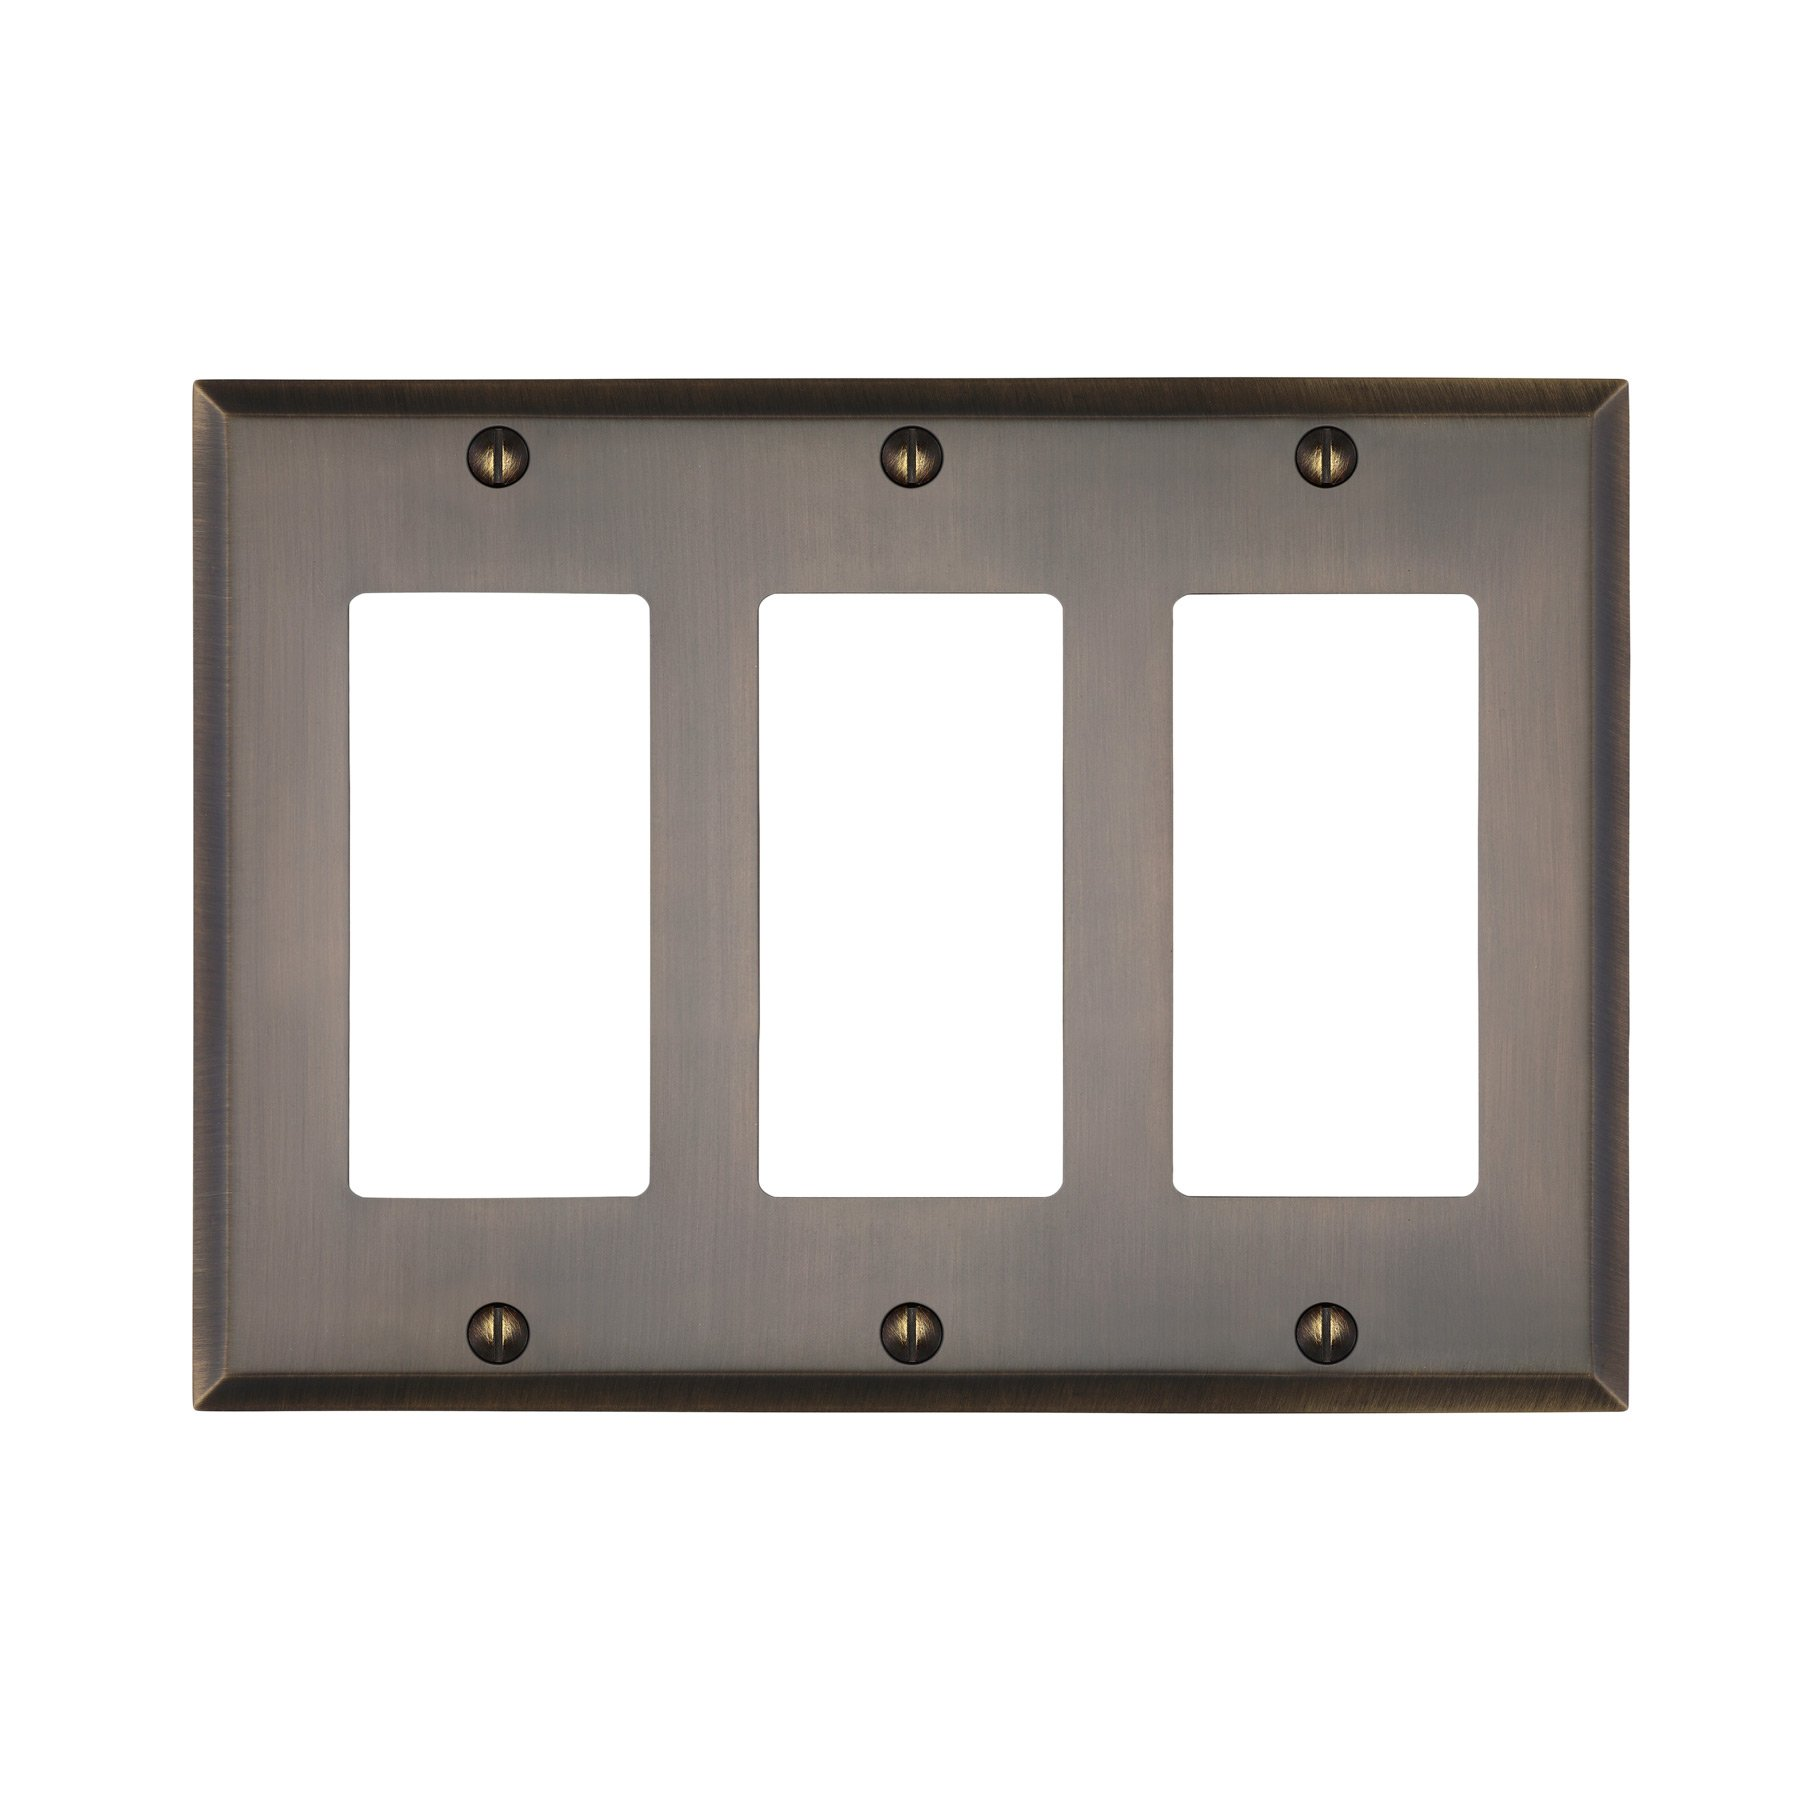 MAYKKE Graham Triple Rocker Light Switch Cover Premium Solid Brass 3 Gang Wall Plate 5 Color Finishes to Choose from, Antique Brass, ALA1020305